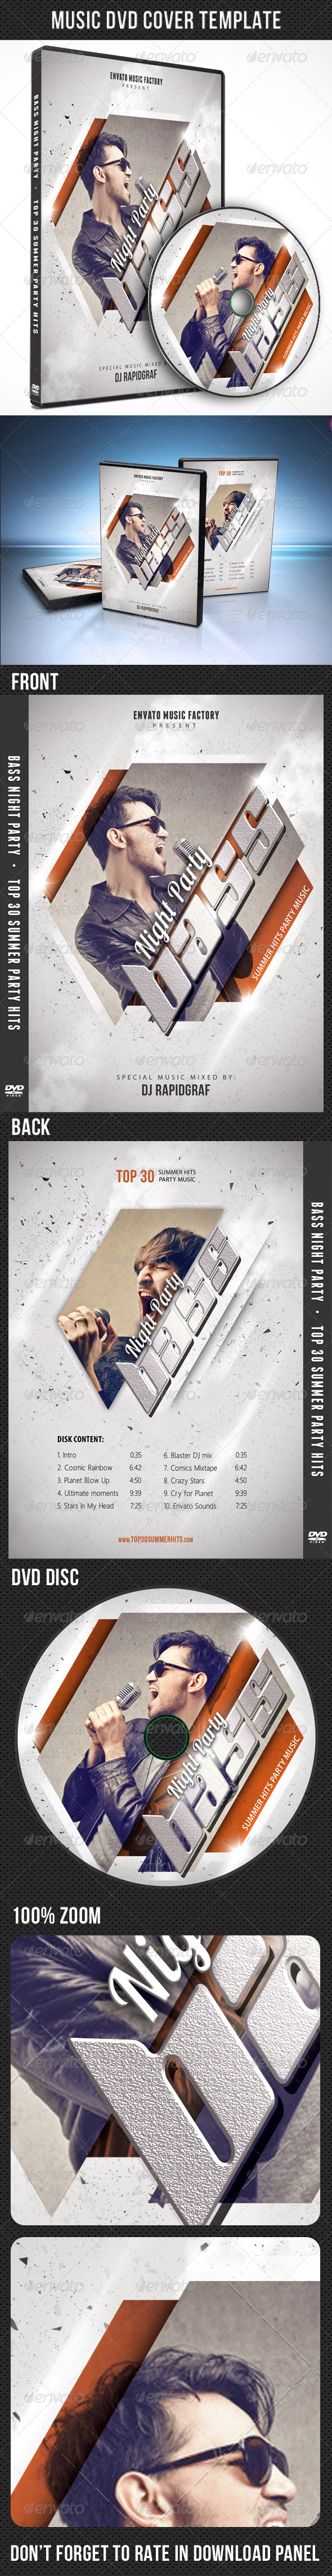 Music DVD Cover Template V03